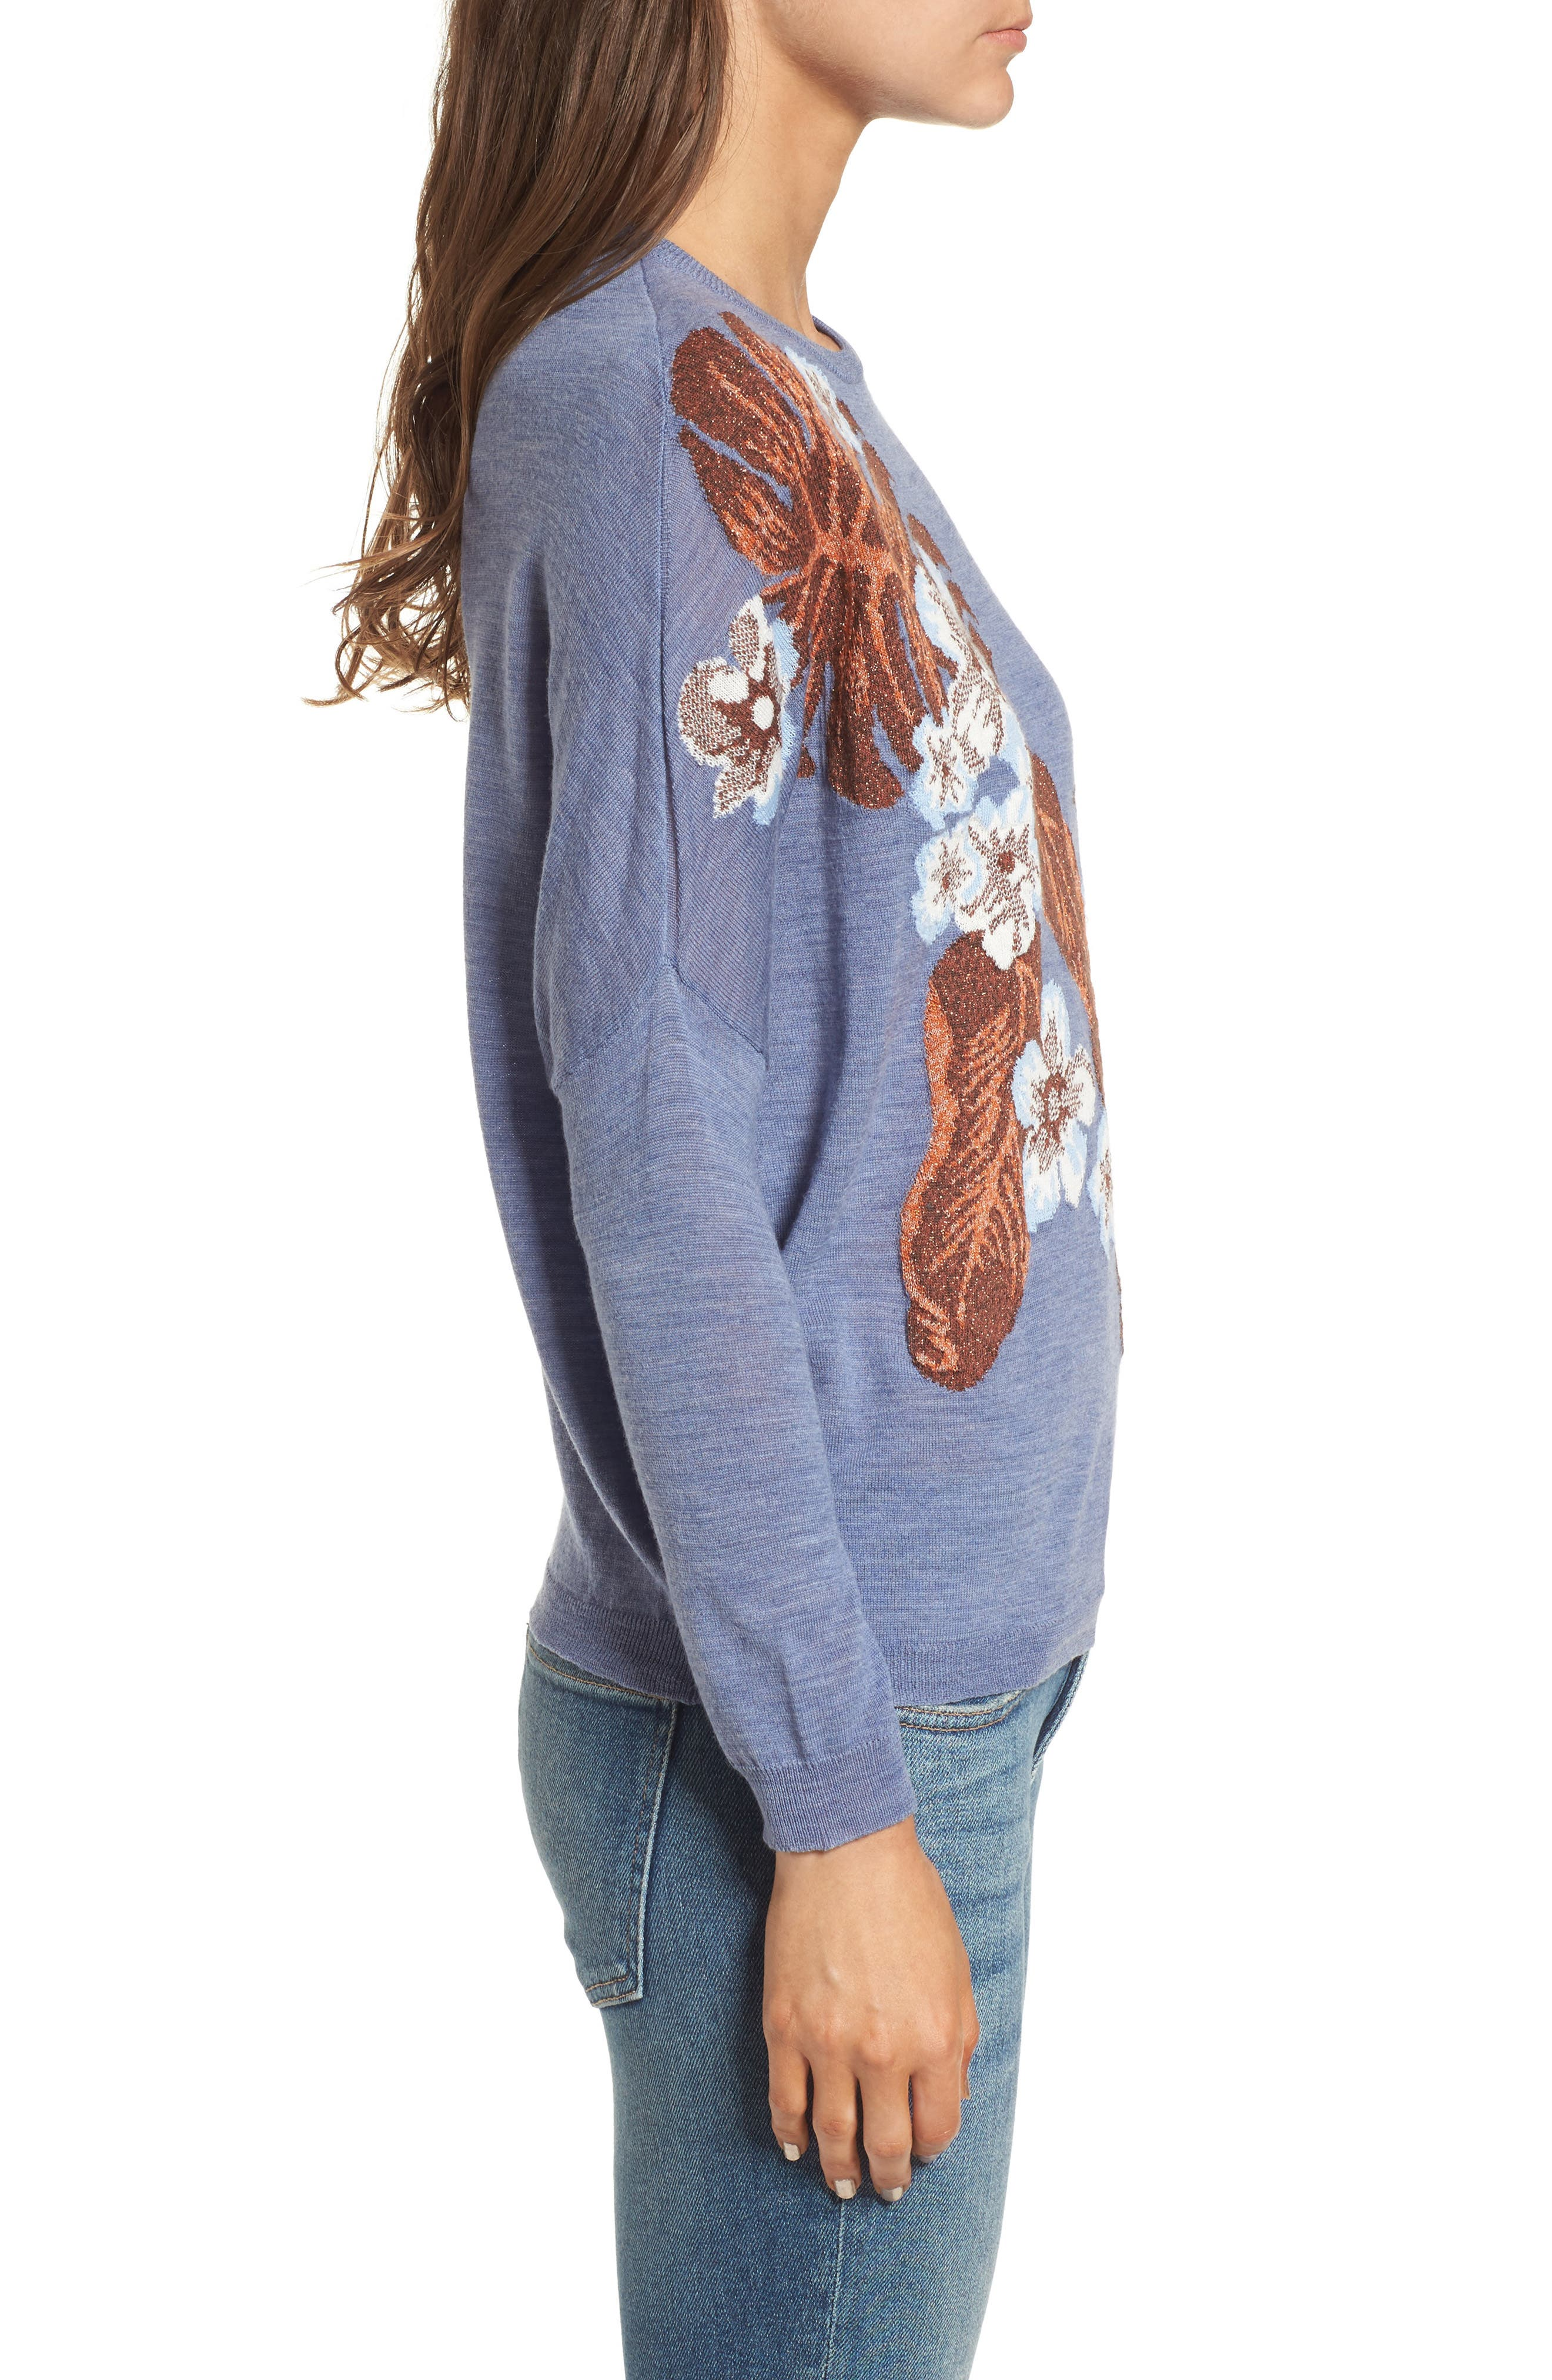 Blupalm Sweater,                             Alternate thumbnail 3, color,